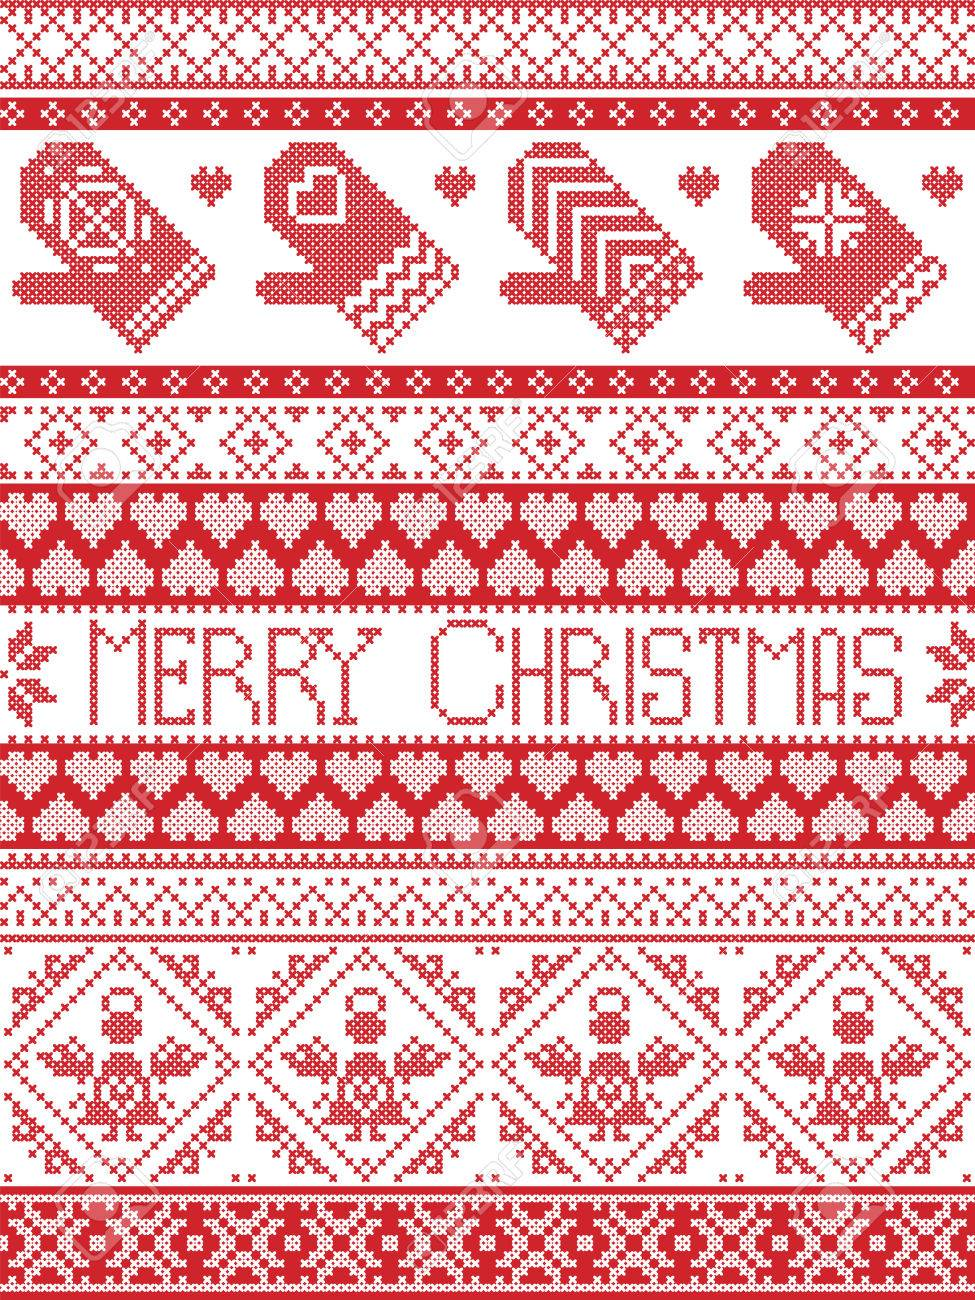 Merry Christmas Tall Scandinavian Printed Textile Style And Inspired ...